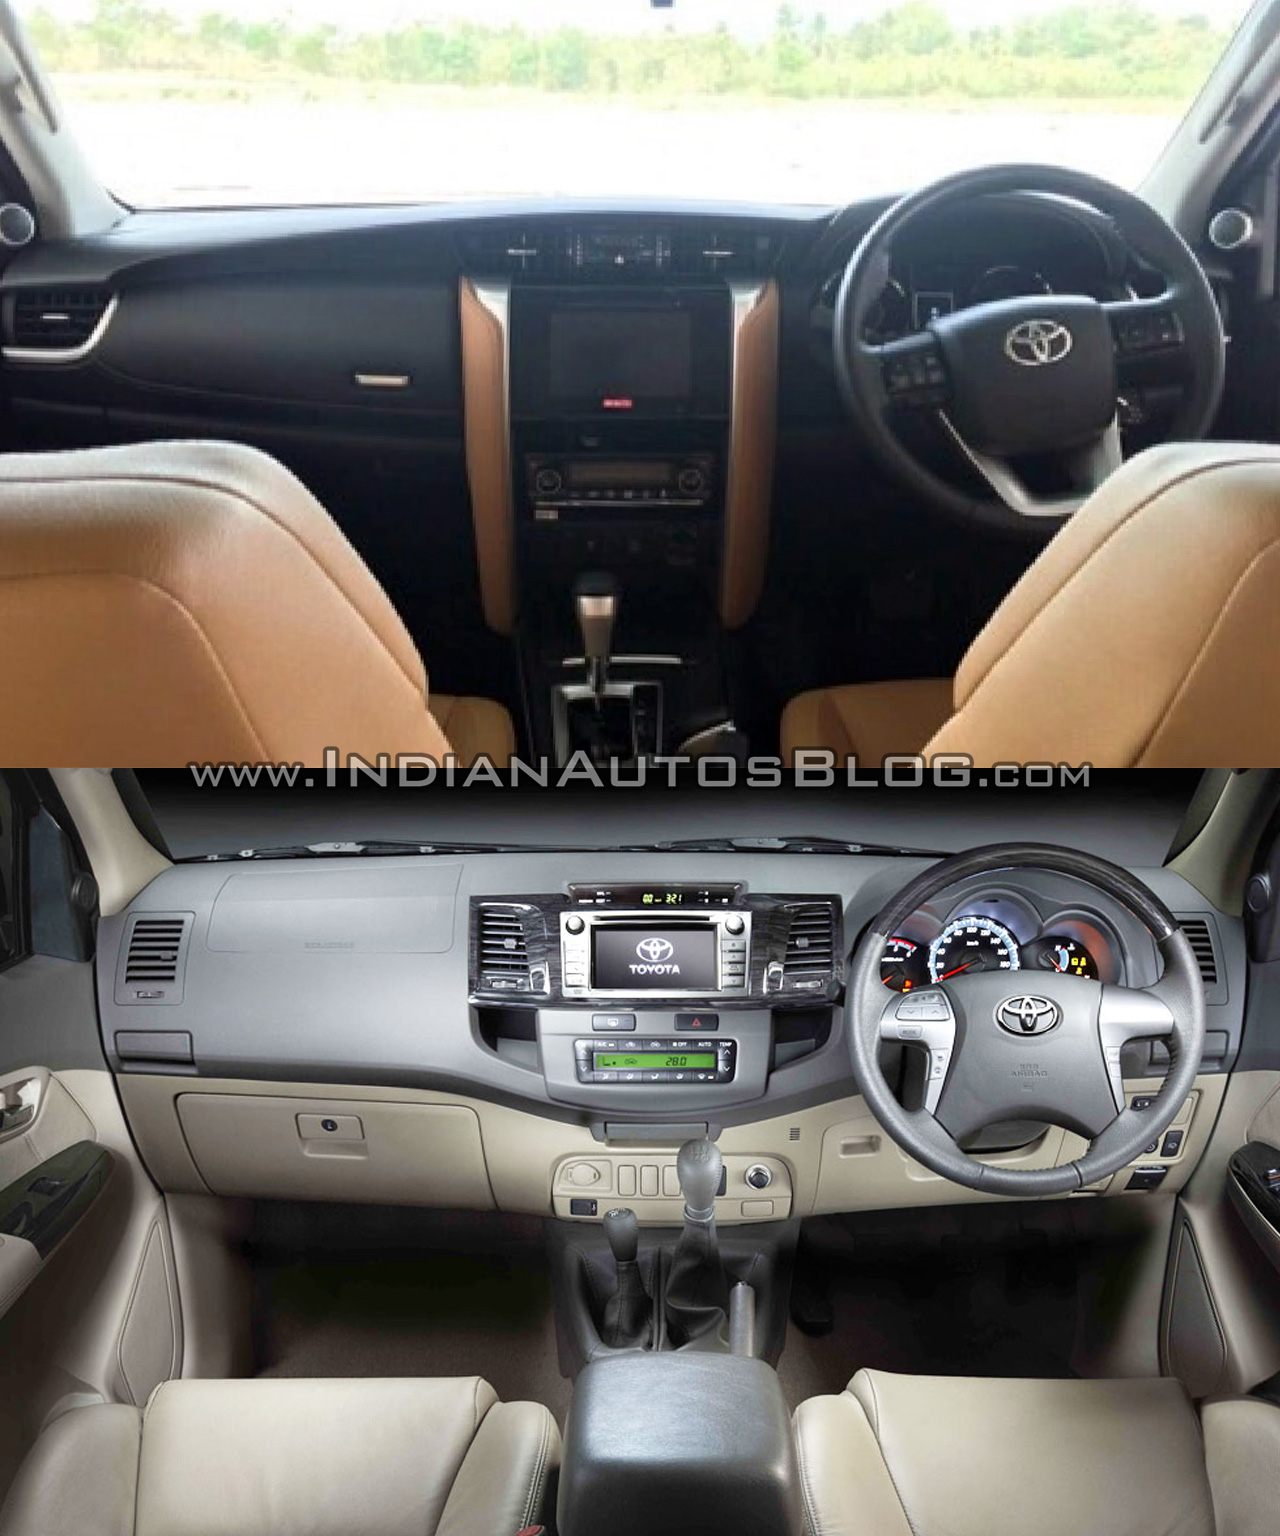 2016 Toyota Fortuner vs current Toyota Fortuner - Old vs New